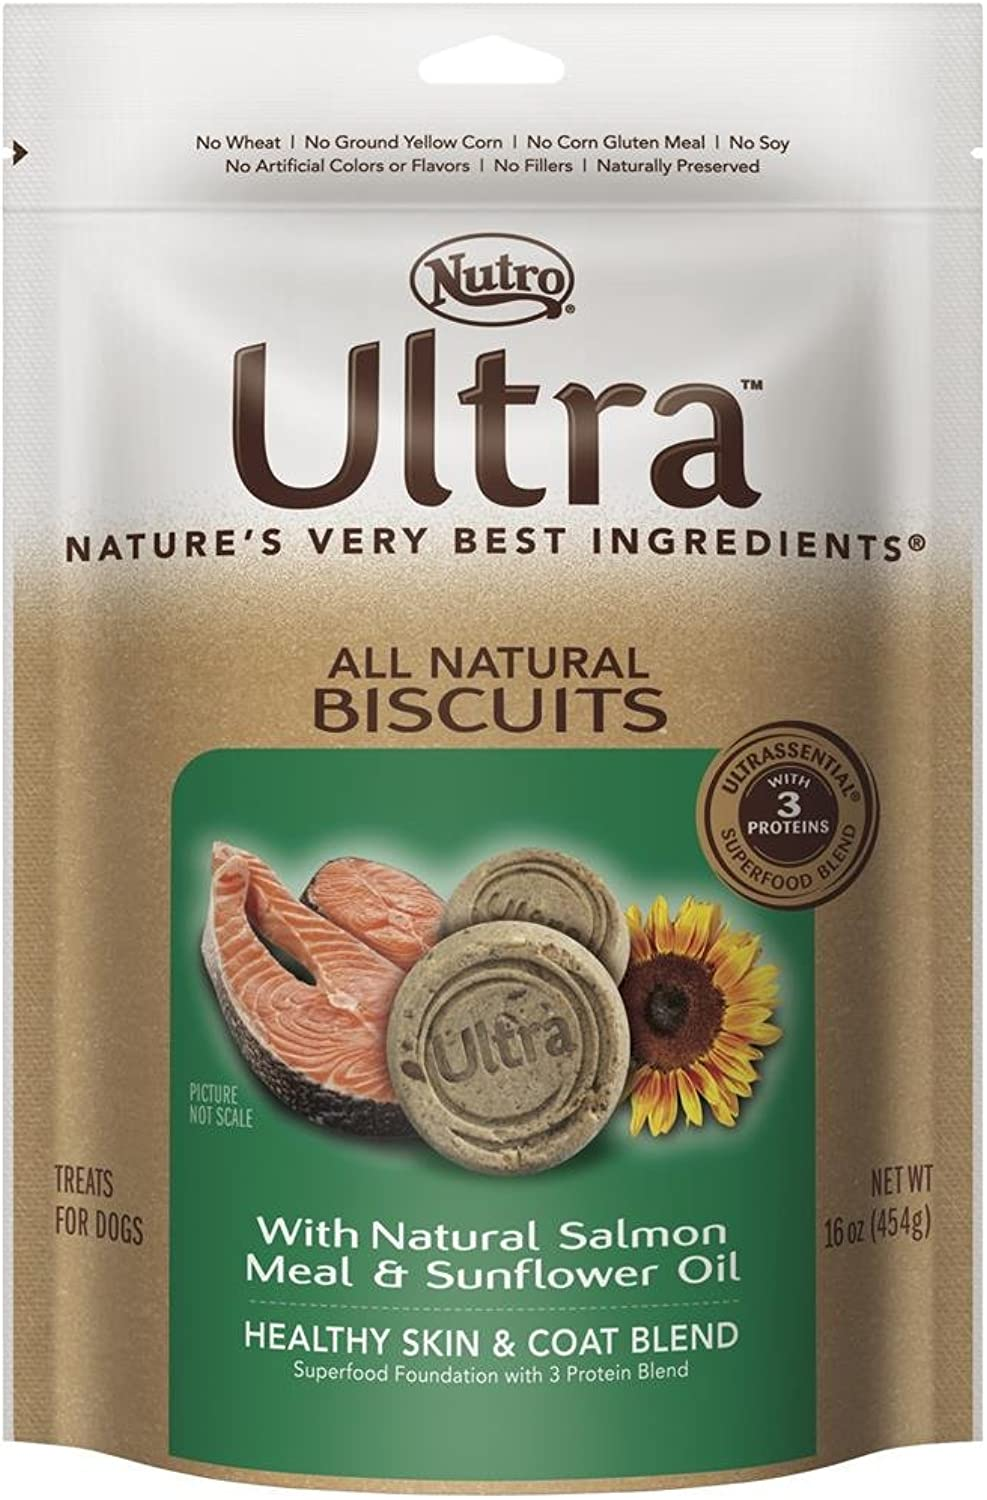 Nutro Ultra Healthy Skin and Shiny Coat All Natural Dog Treat with Salmon and Sunflower Oil, 16 oz.